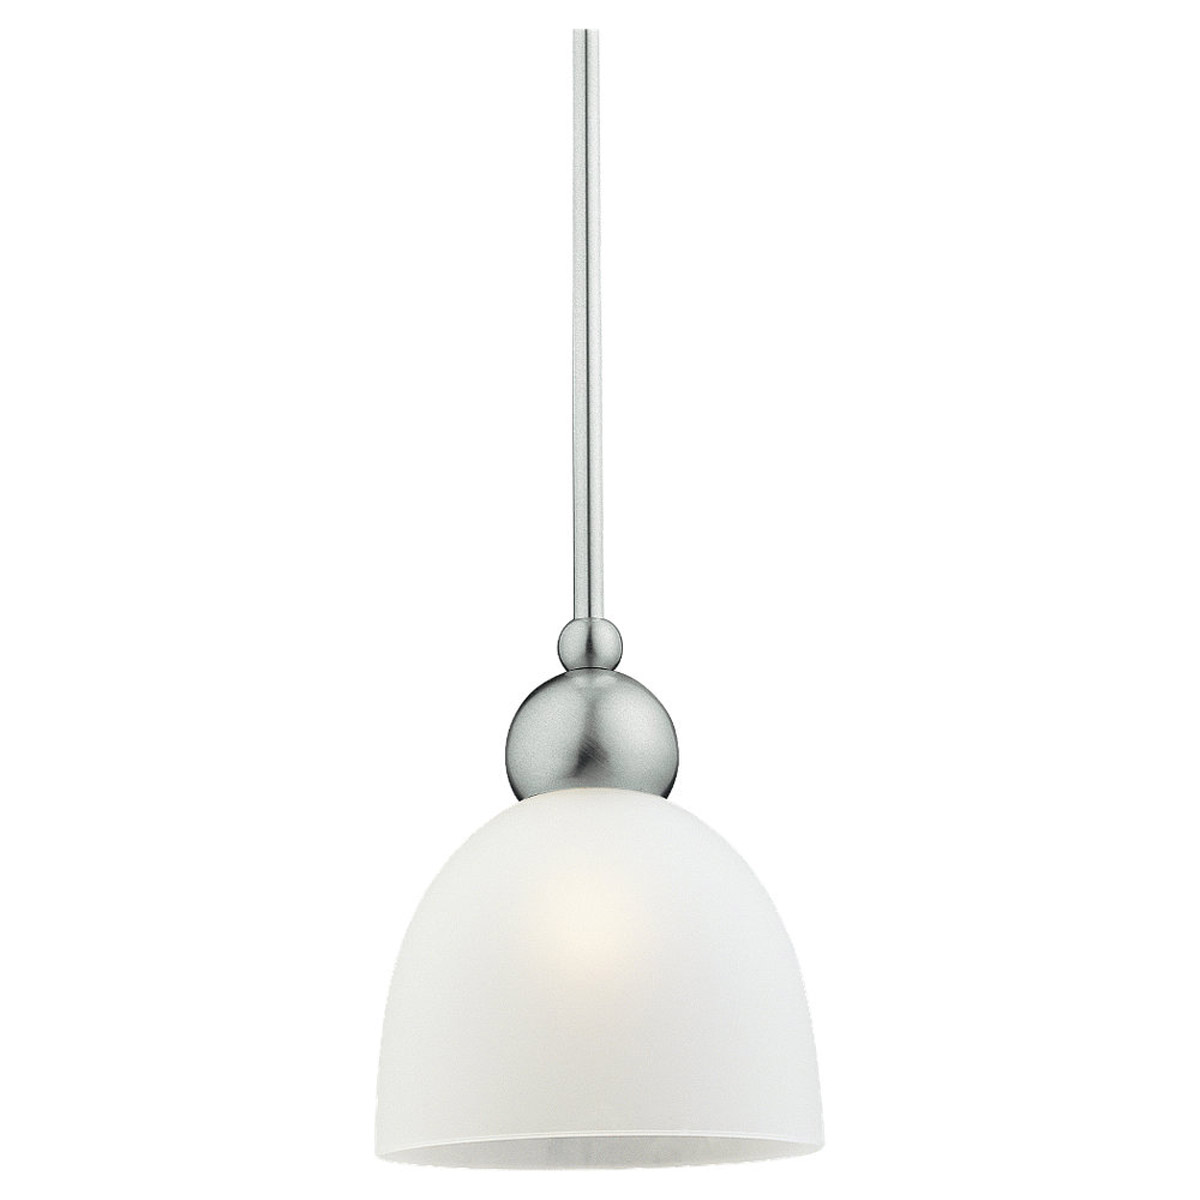 Sea Gull Lighting Metropolis 1 Light Mini Pendant in Brushed Nickel 61035-962